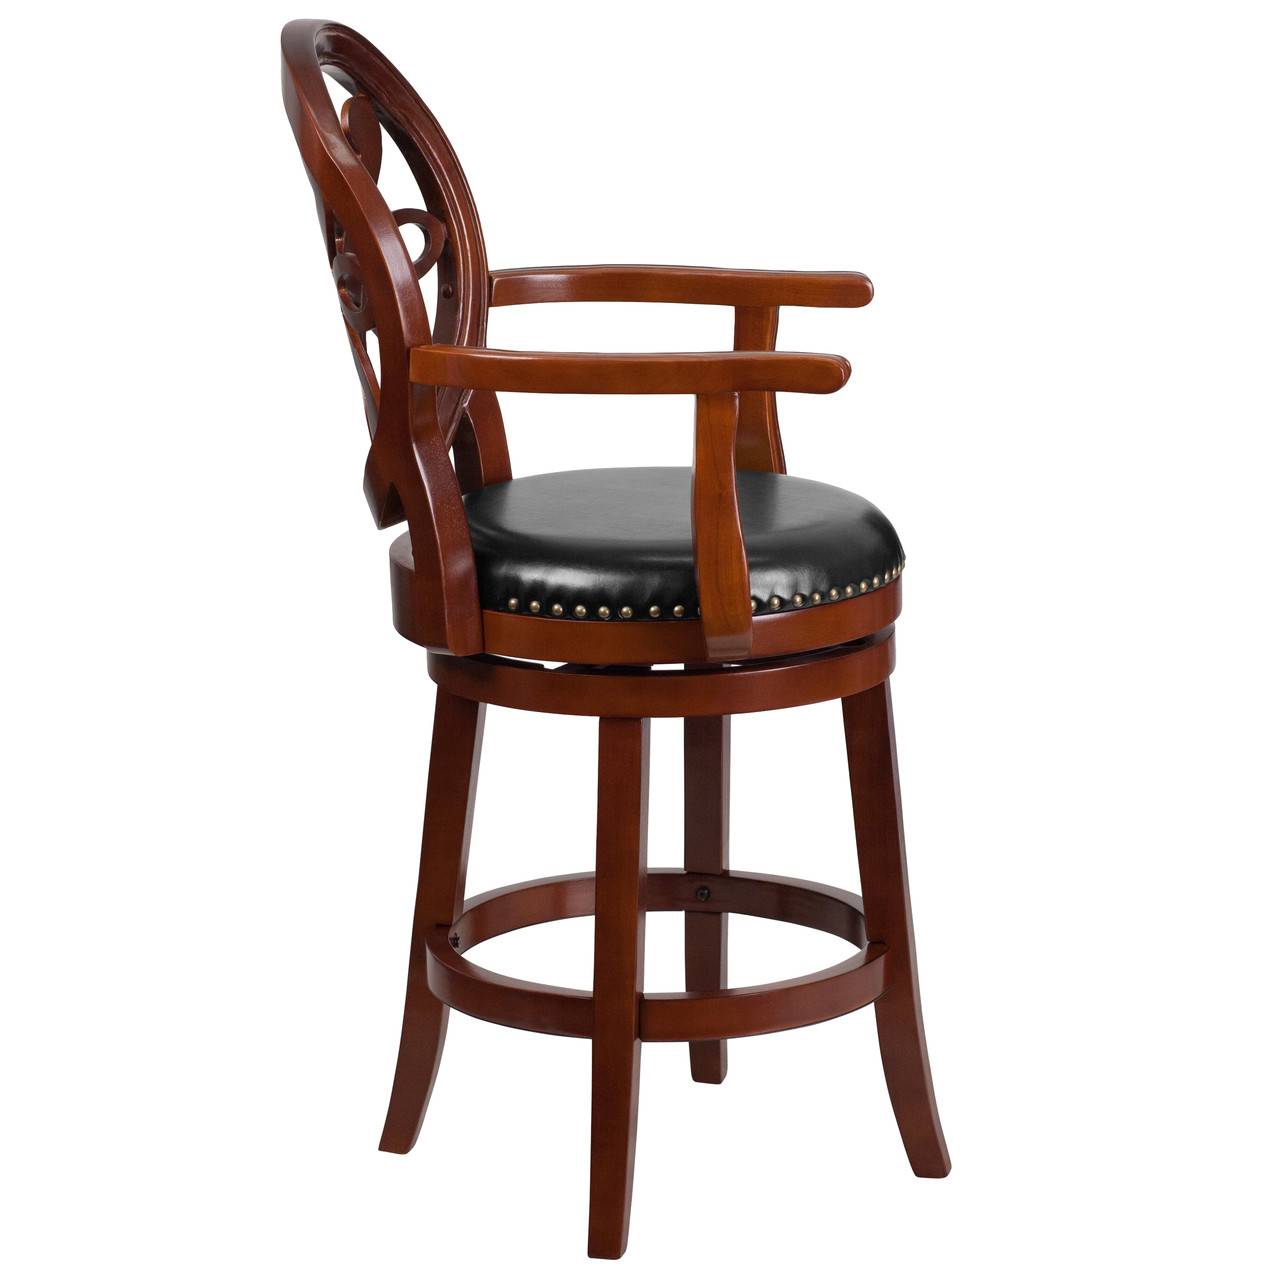 Counter Height Chairs With Arms Flash Furniture 26 High Cherry Wood Counter Height Stool With Arms Carved Back And Black Leather Swivel Seat